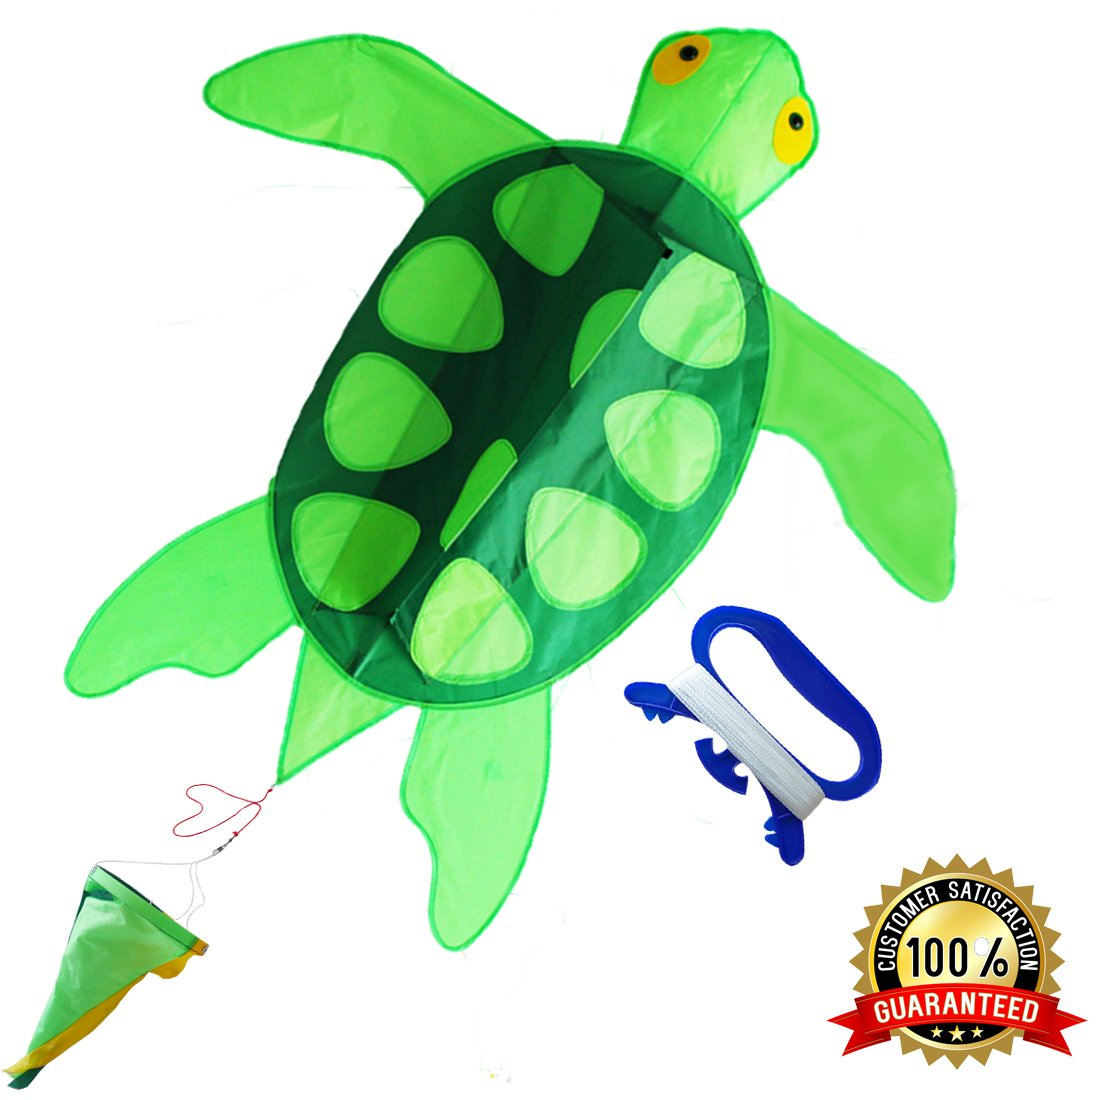 ZHONGRAN Kites Kids Adults- Huge Sea Turtle Kite Easy Flyer Assemble Beginner, Single Line Long Tail, Best Beach/Park Toys /Outdoor Games Boy Girl, Perfect